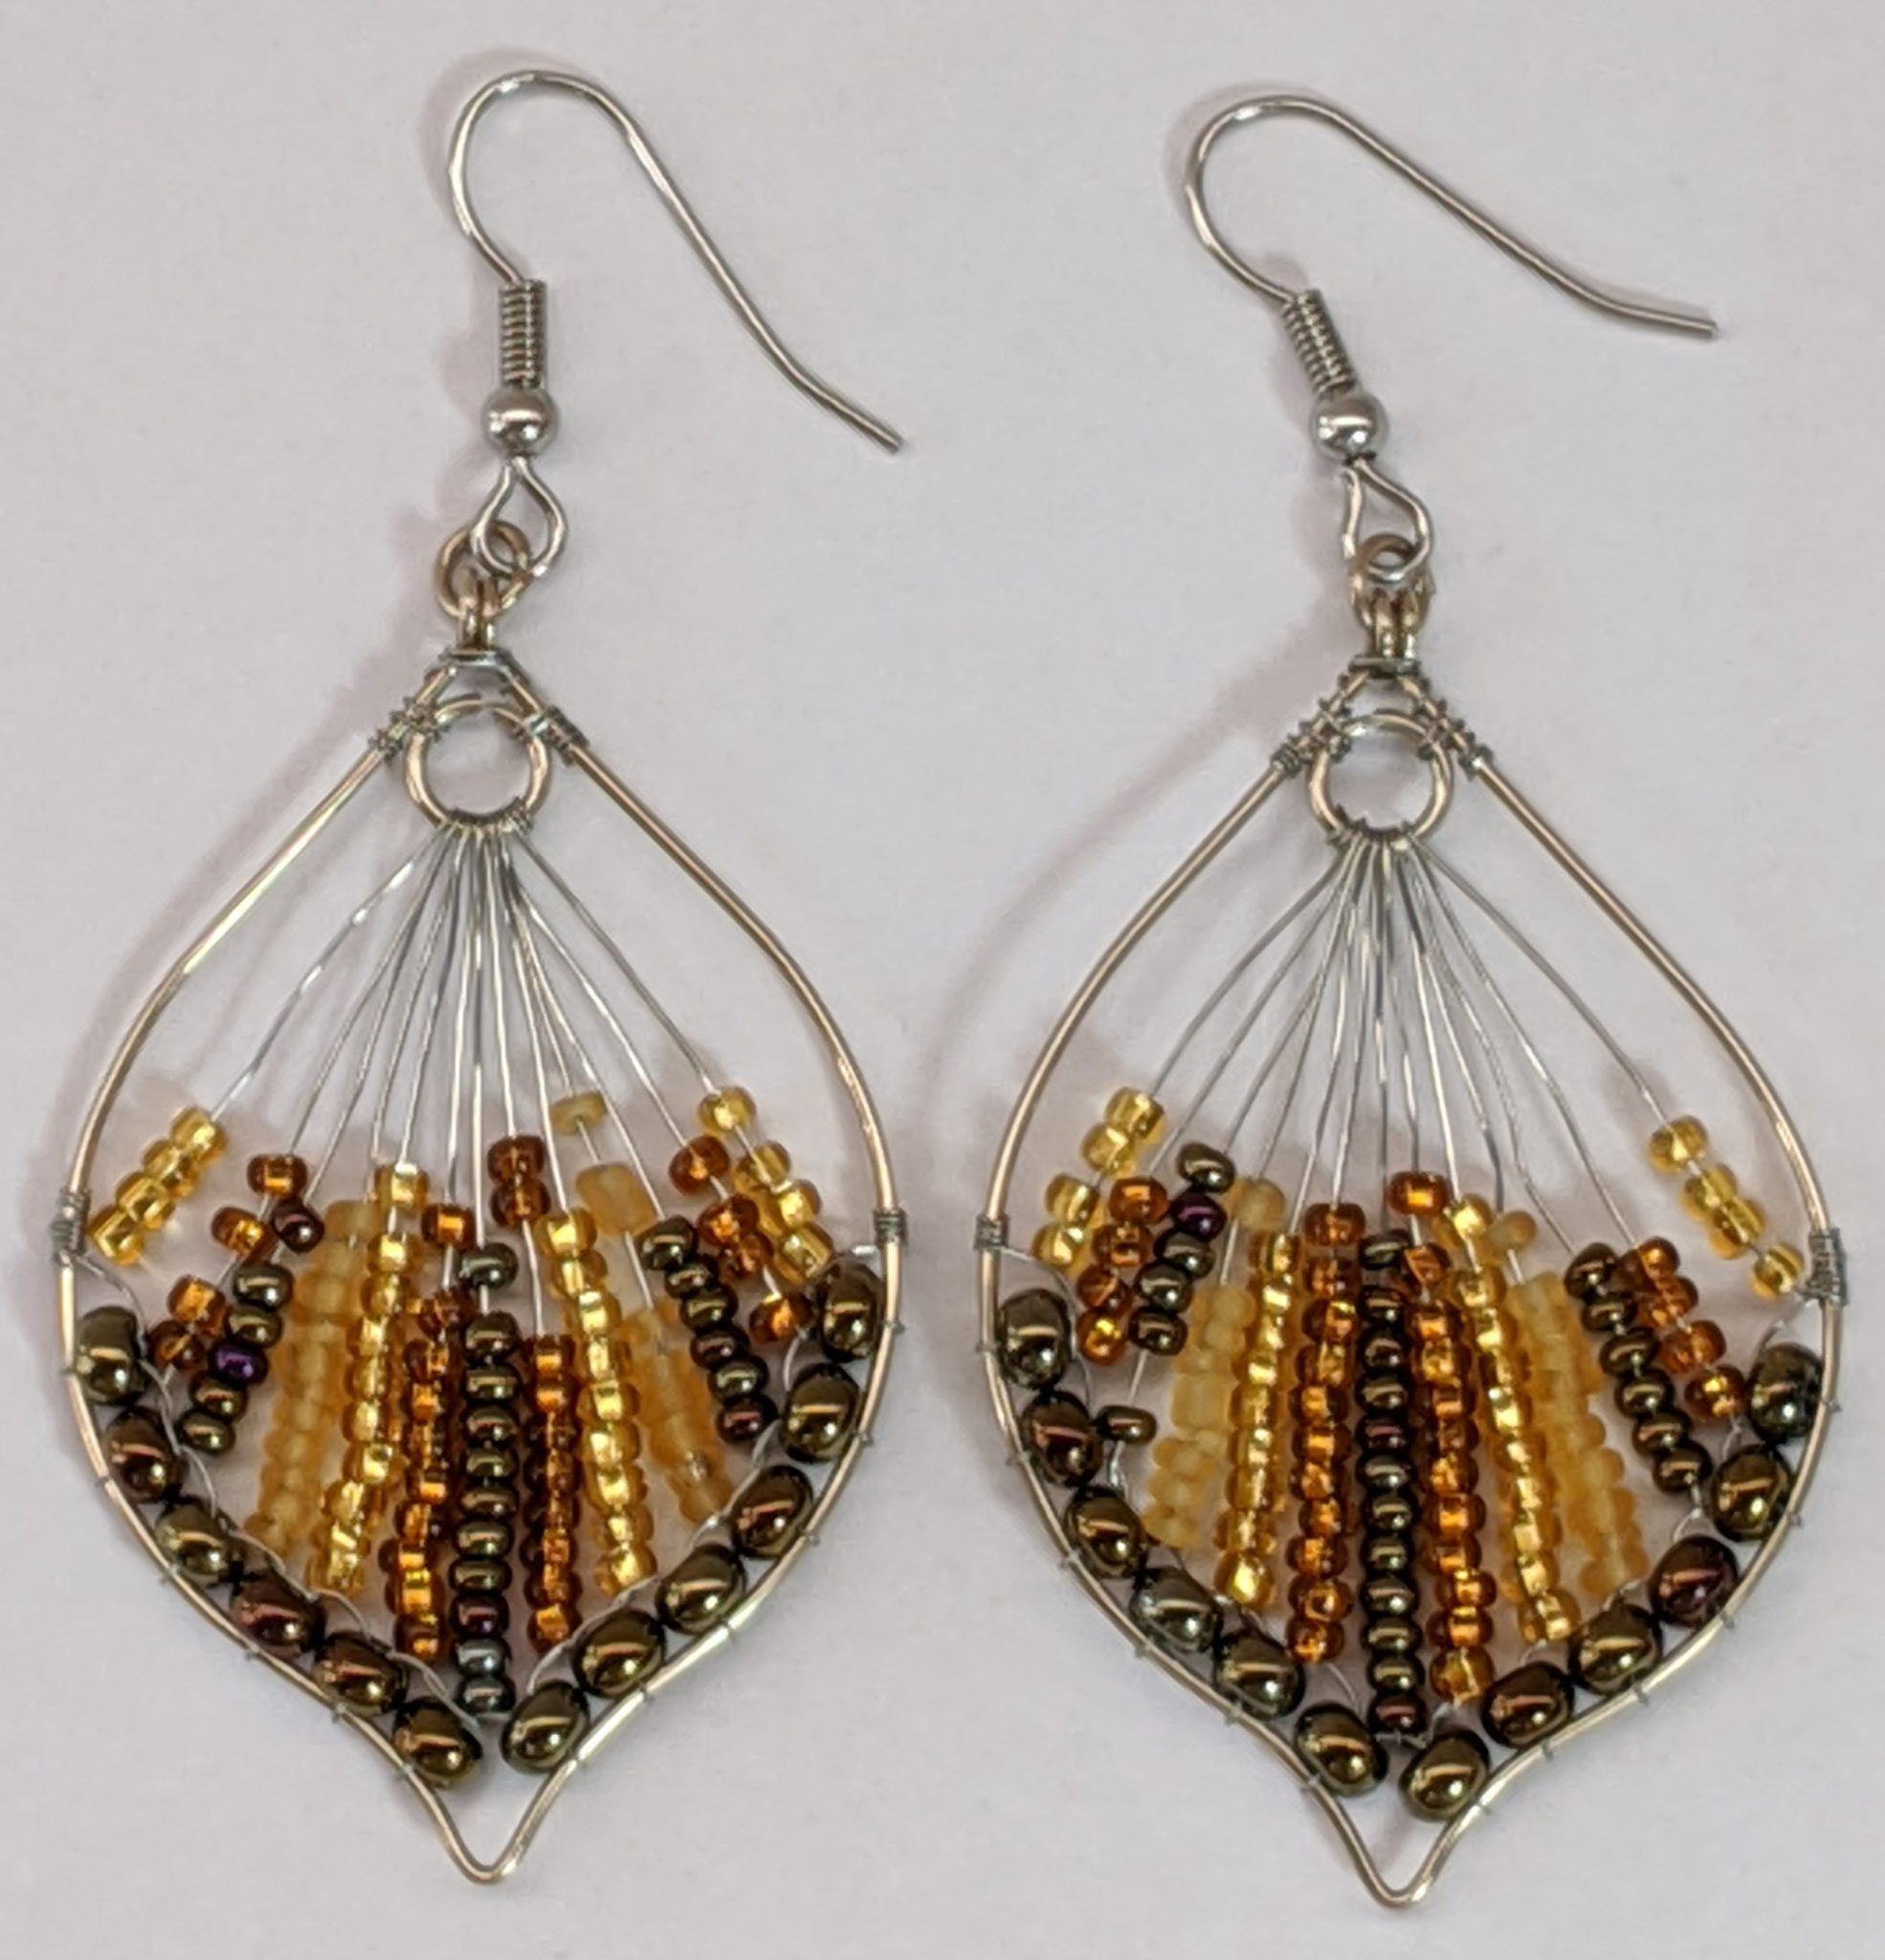 Peacock Tail Beaded Earrings - Golds